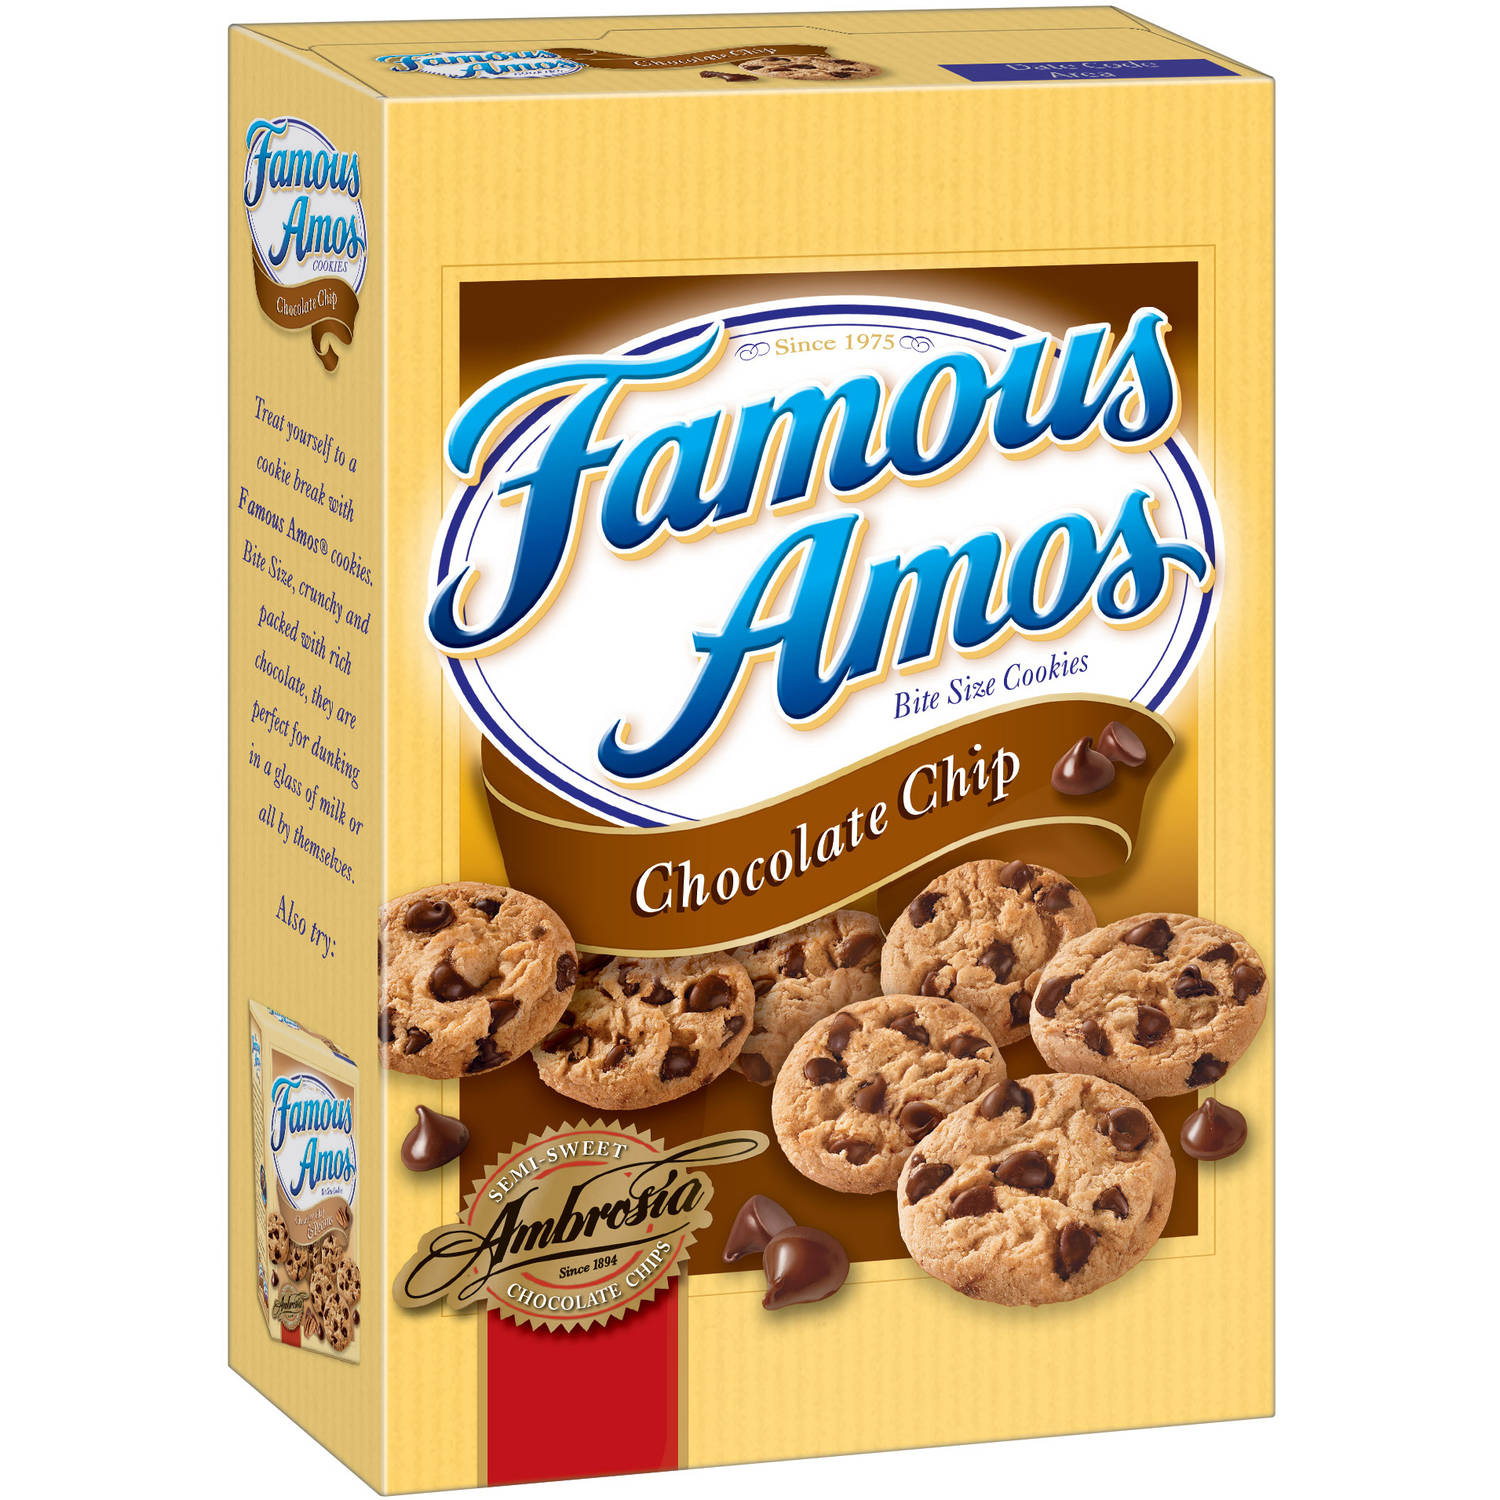 Famous Amos Bite Size Chocolate Chip Cookies, 12.4 oz